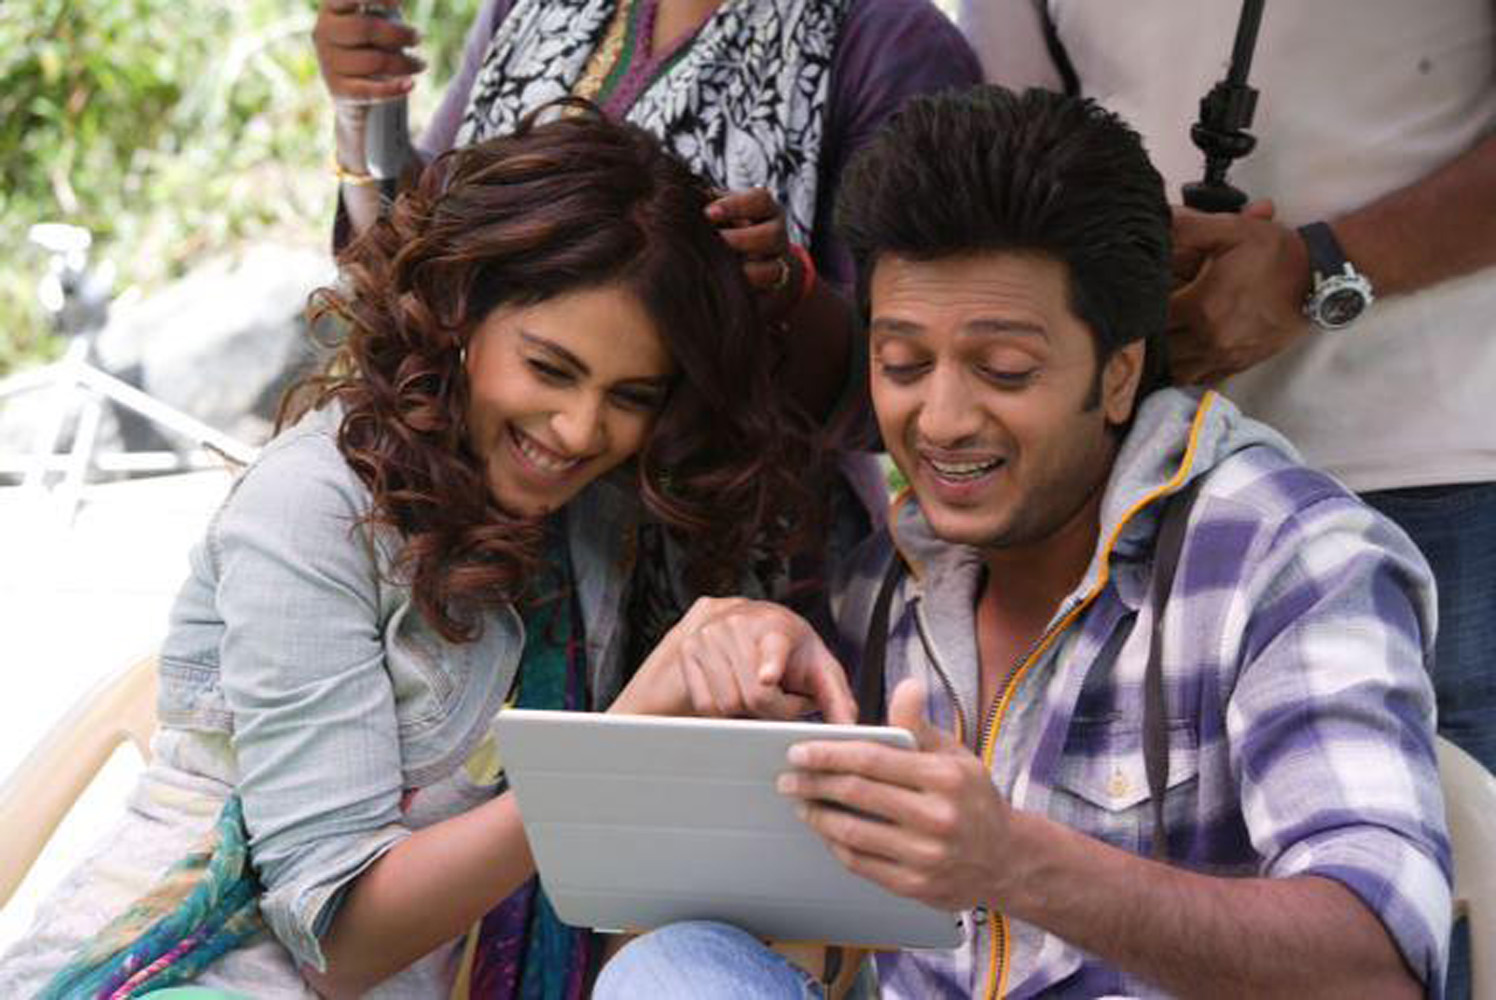 http://onlookersmedia.in/wp-content/uploads/2015/05/Riteish-Deshmukh-Genelia-Family-Stills-Images-Photos-Bollywood-Movie-Onlookers-Media-7.jpg